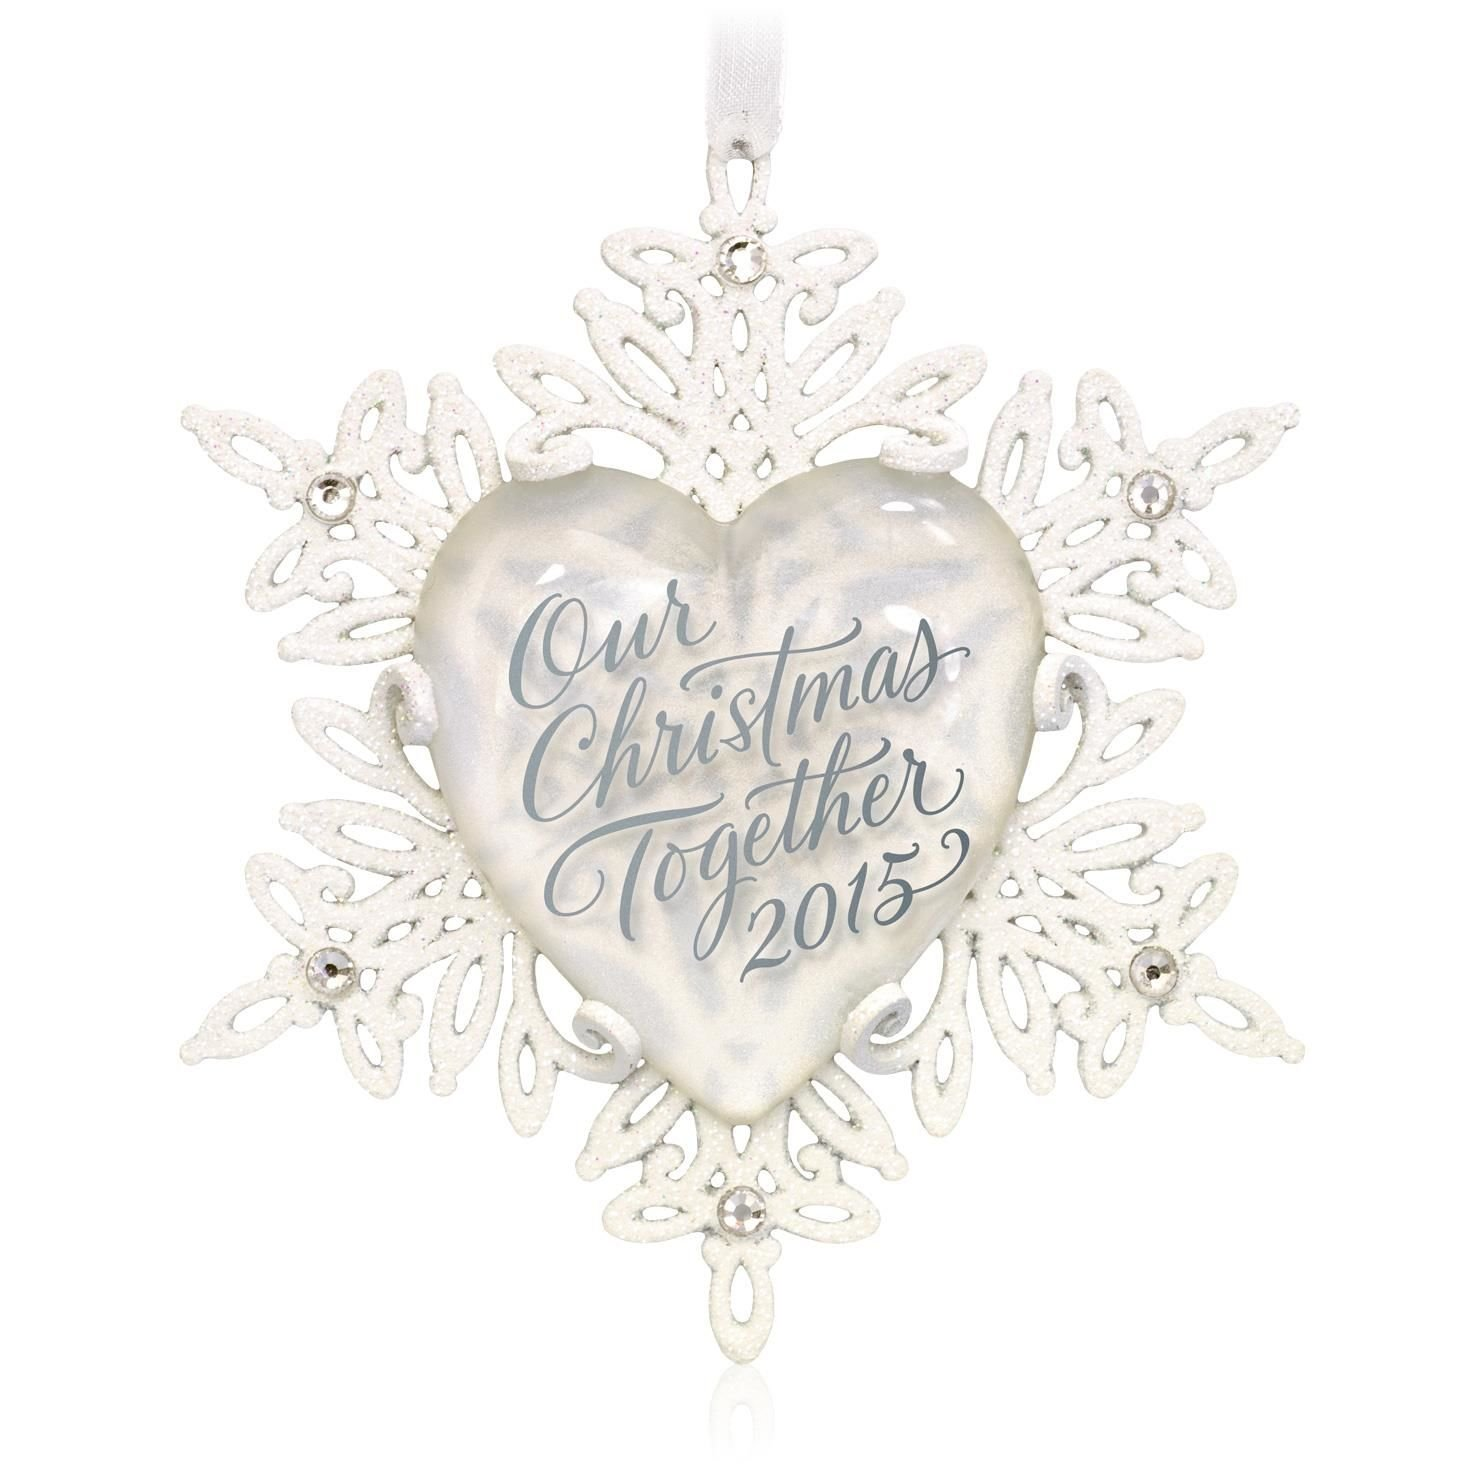 Our Christmas Together Snowflake Ornament 2015 Hallmark